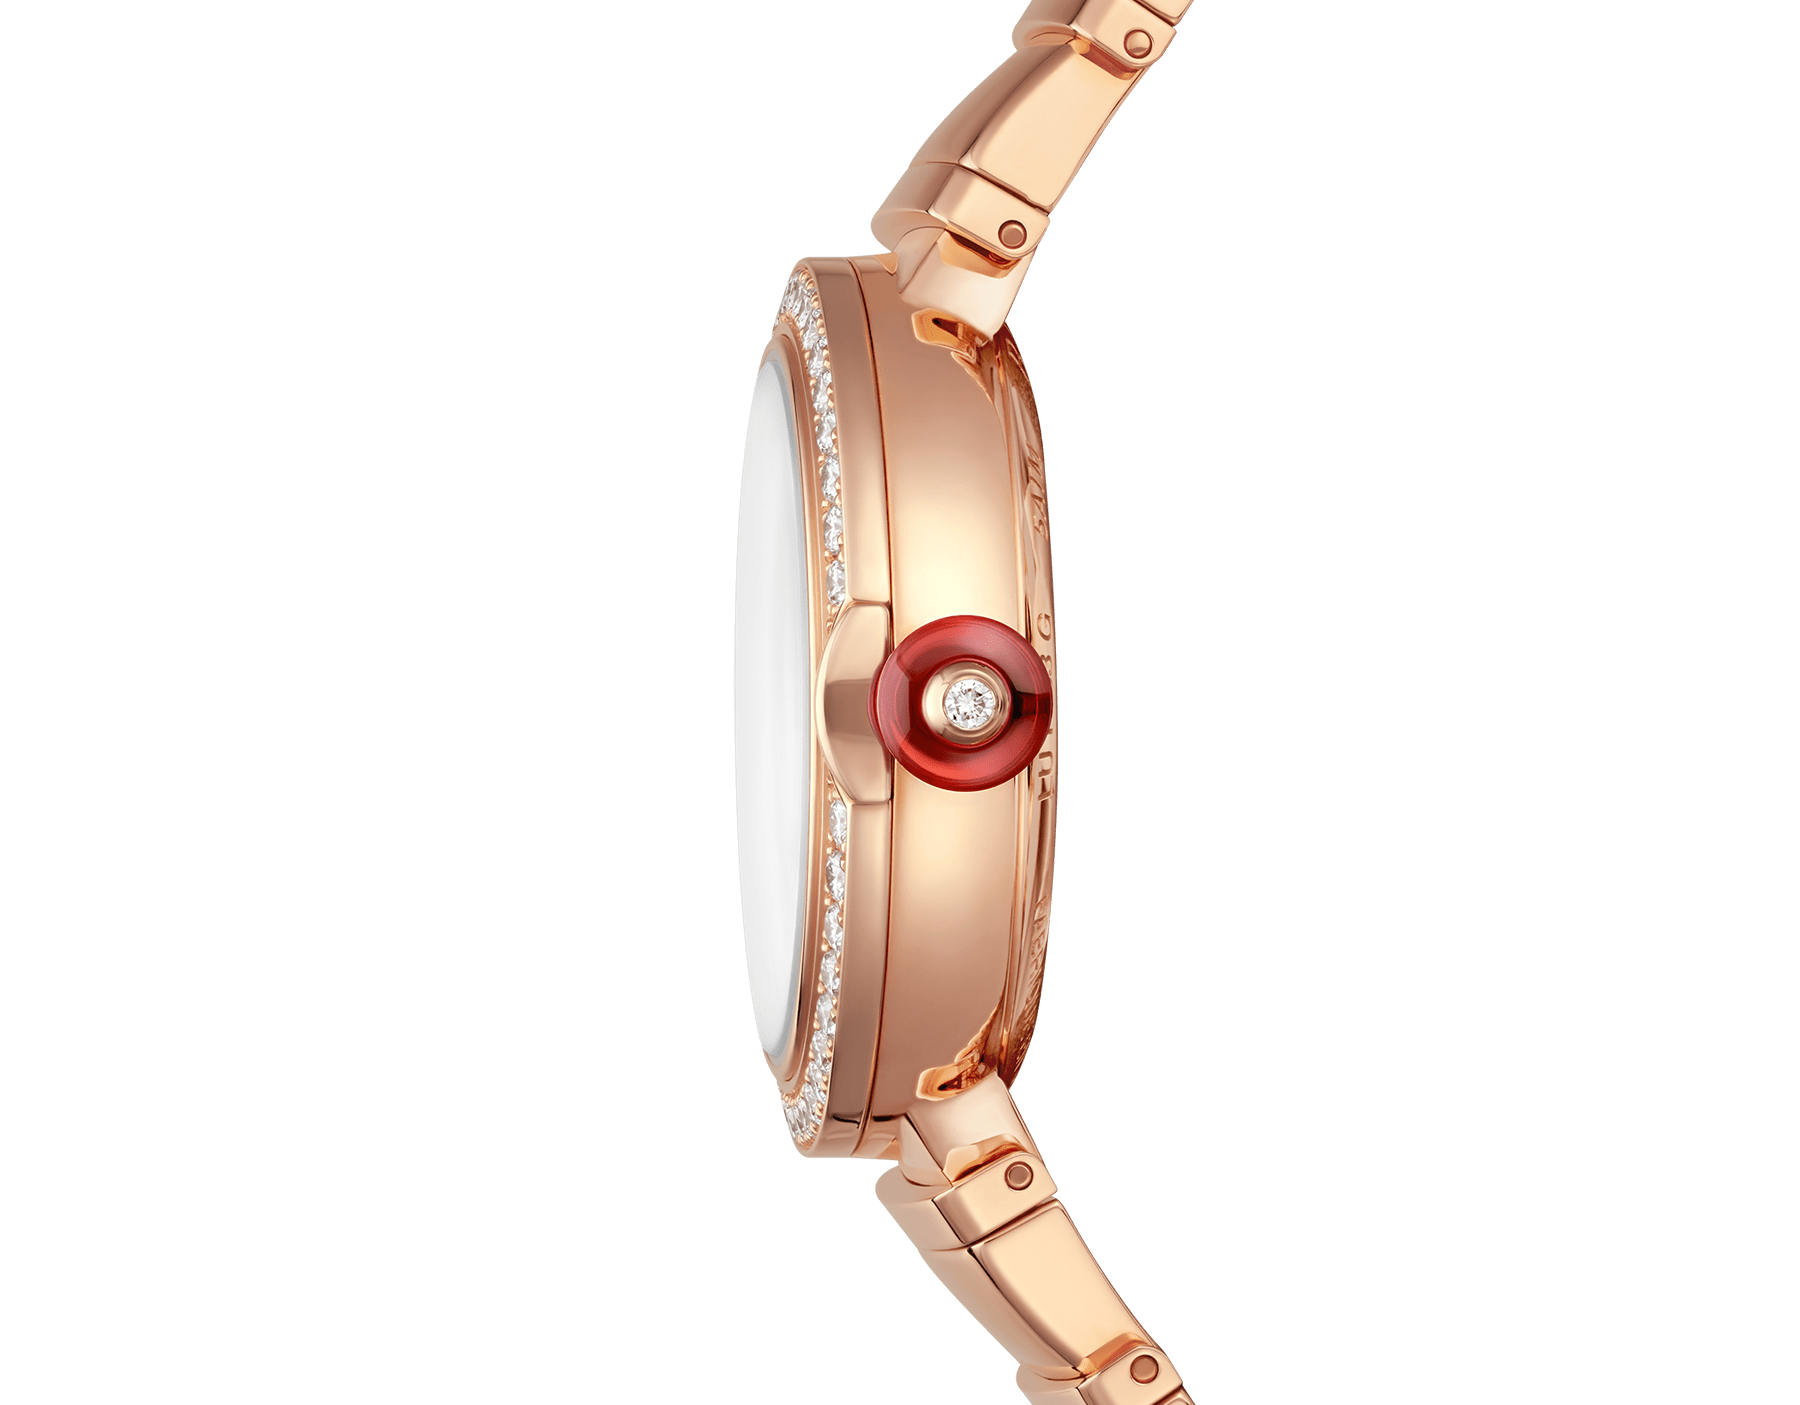 LVCEA watch with 18 kt rose gold and brilliant-cut diamond case, black opaline dial and 18 kt rose gold bracelet. 102260 image 3